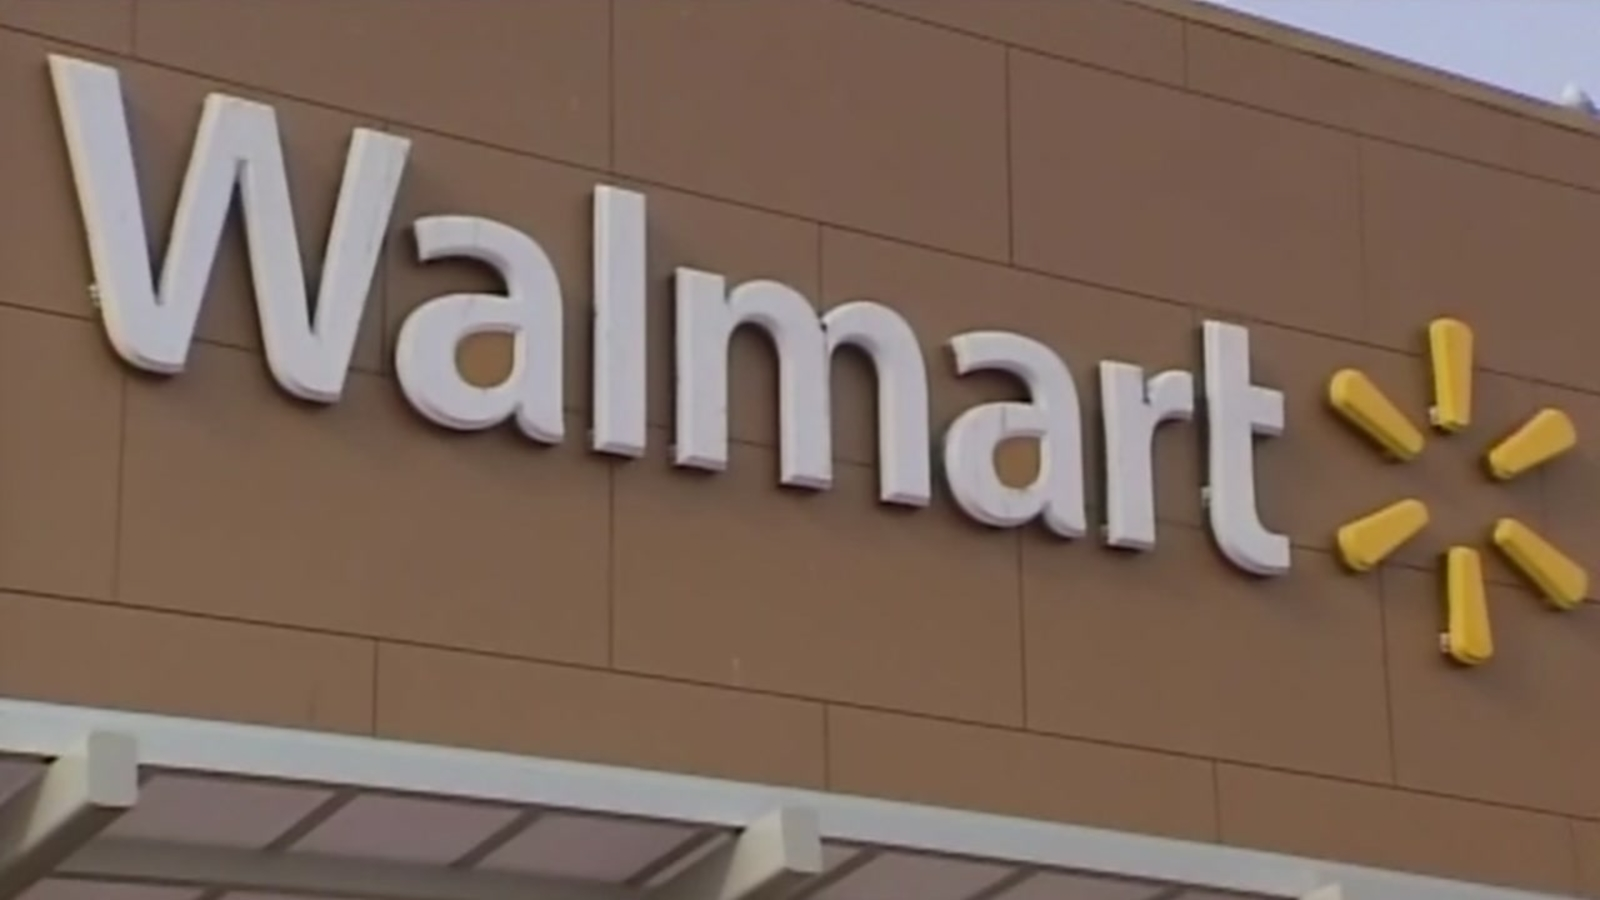 Walmart managers earn $175,000 a year on average: Report - KTRK-TV